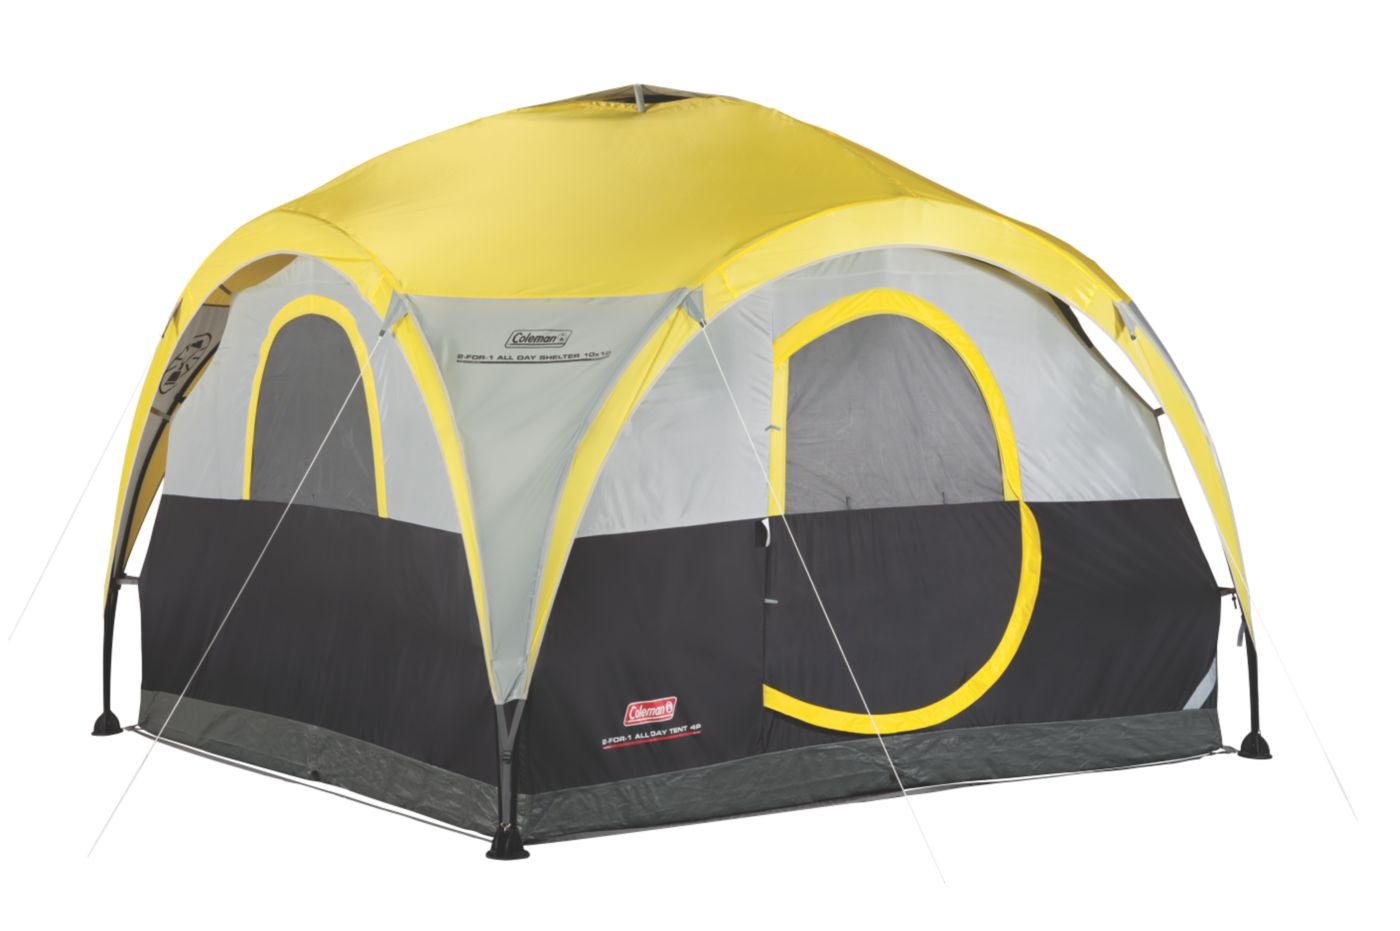 2-For-1 All Day 4-Person Shelter u0026 Tent  sc 1 st  Coleman & 4 Person Dome Tents | Coleman Tents | Coleman